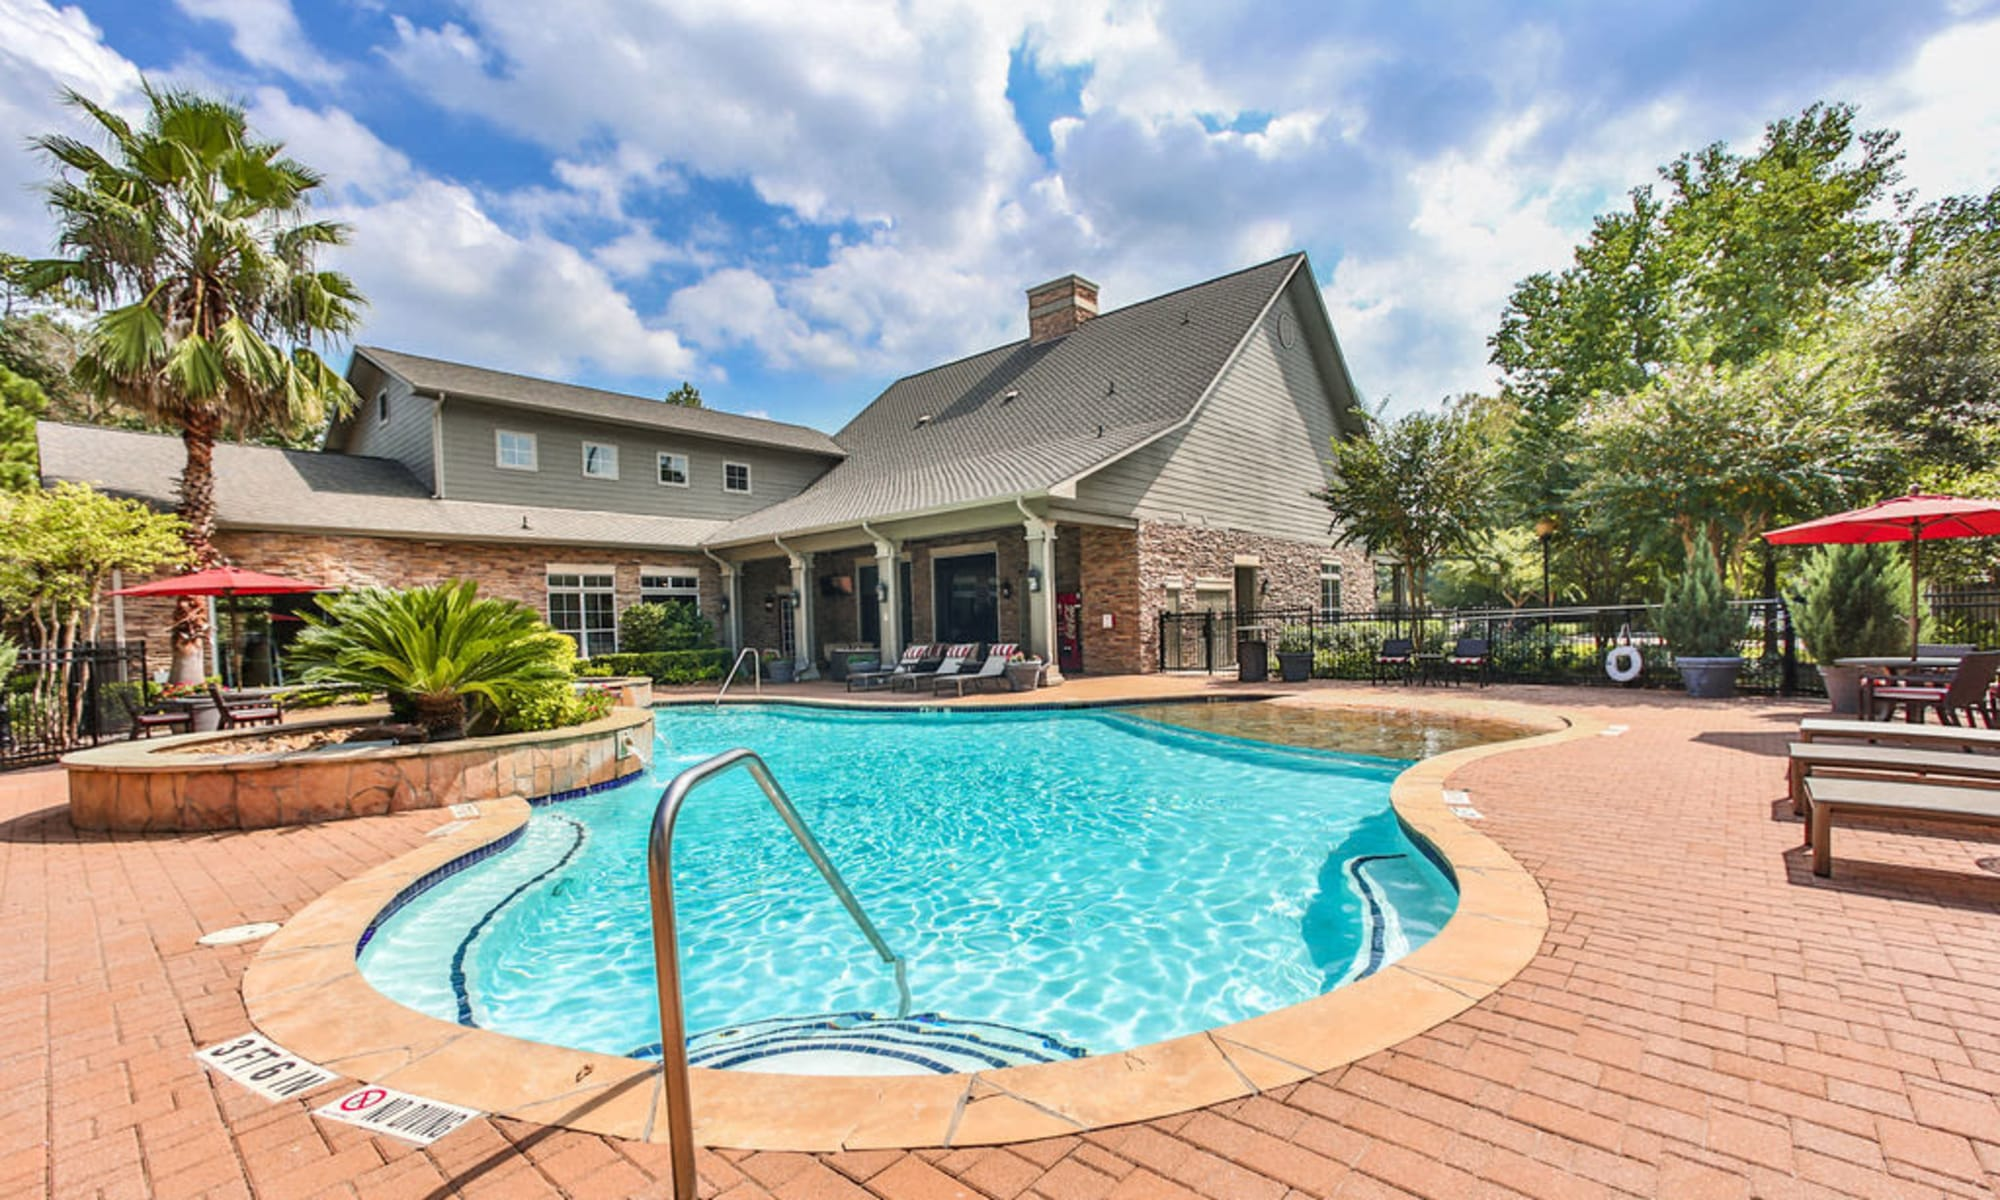 Apply to live at Stone Creek at The Woodlands in The Woodlands, Texas